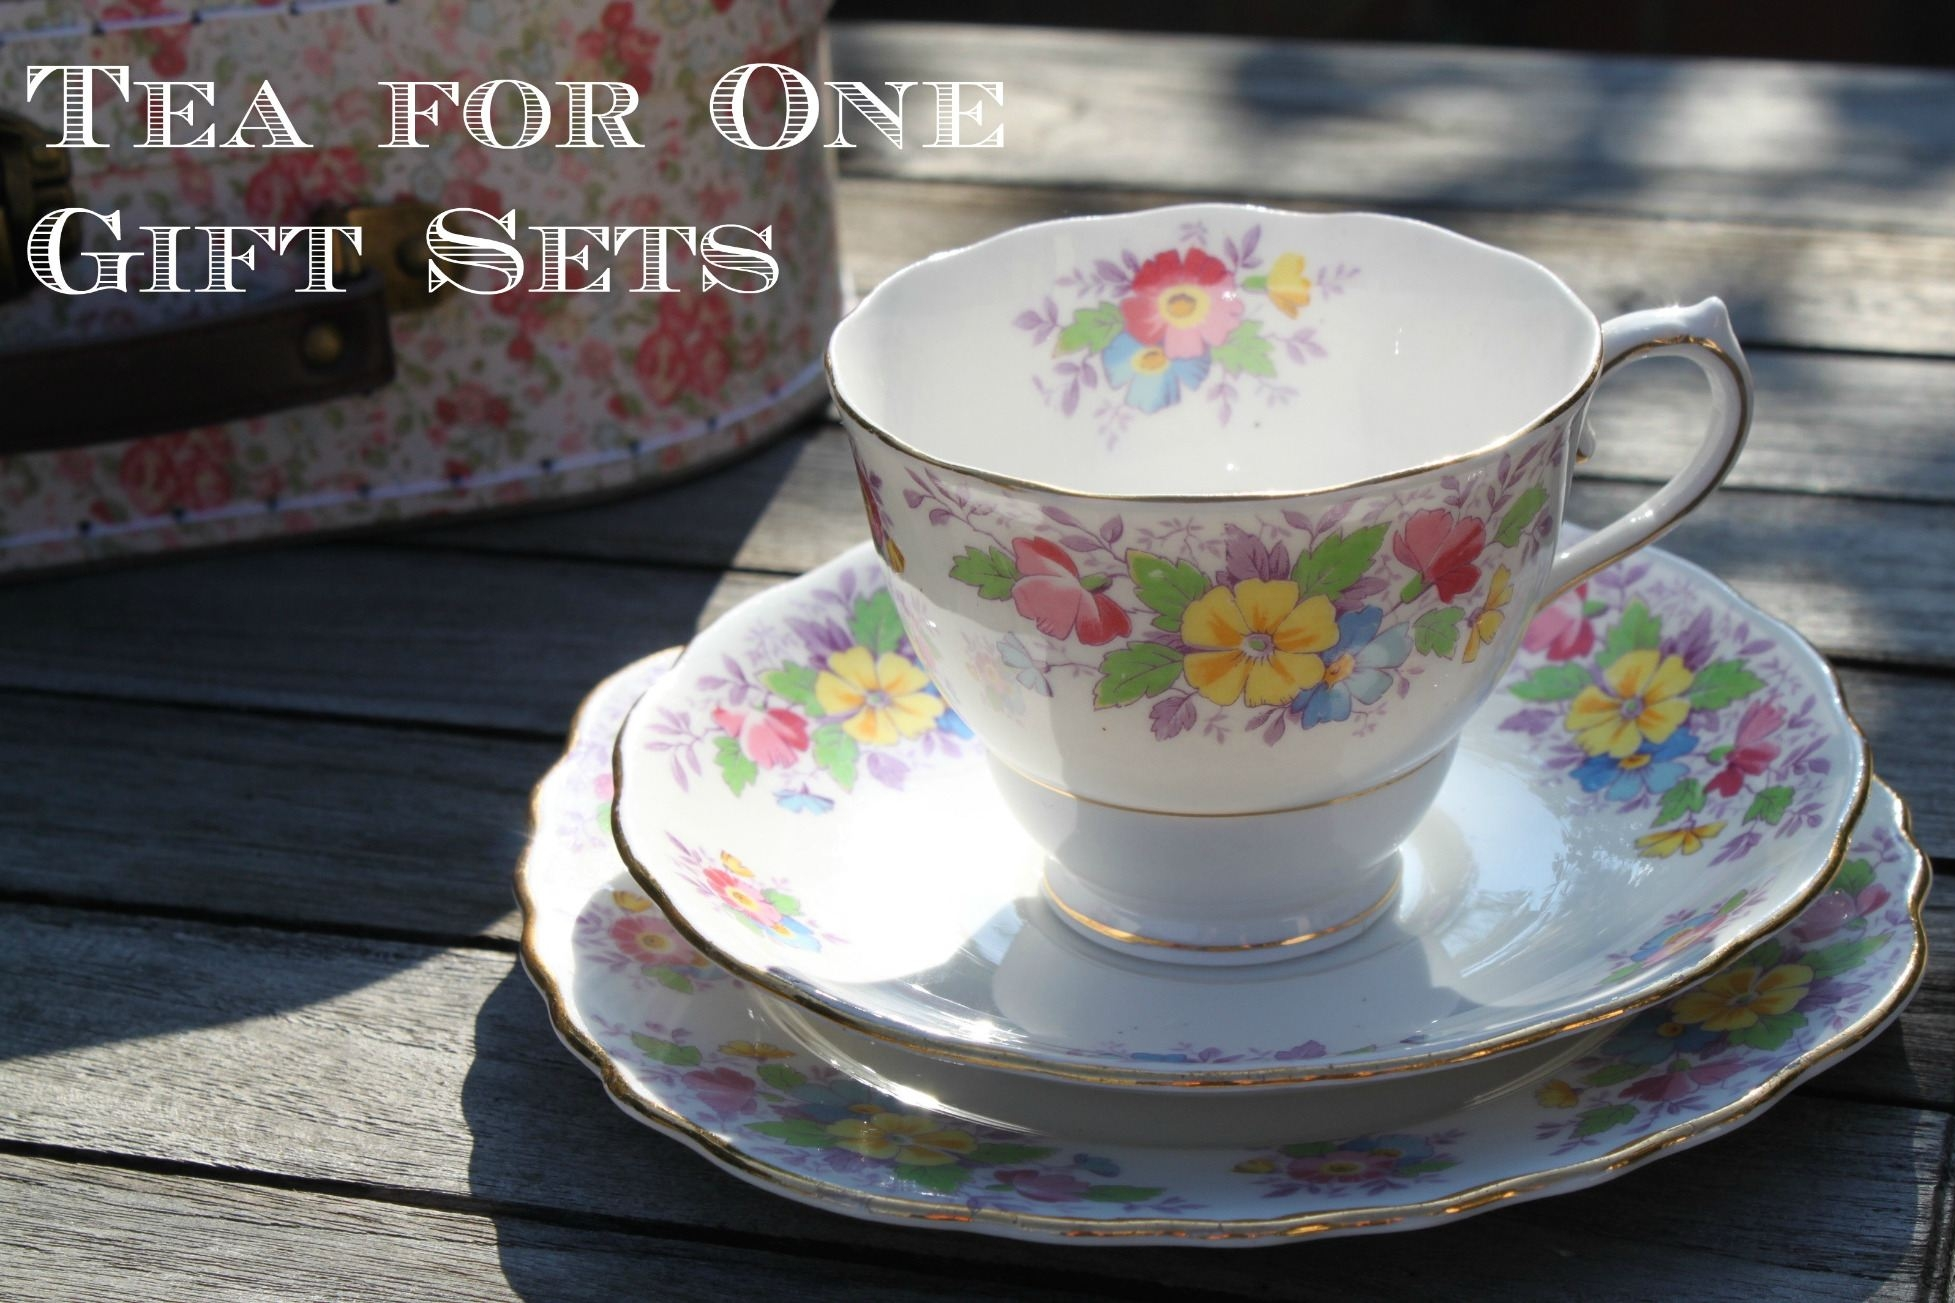 Tea for One Gift Sets